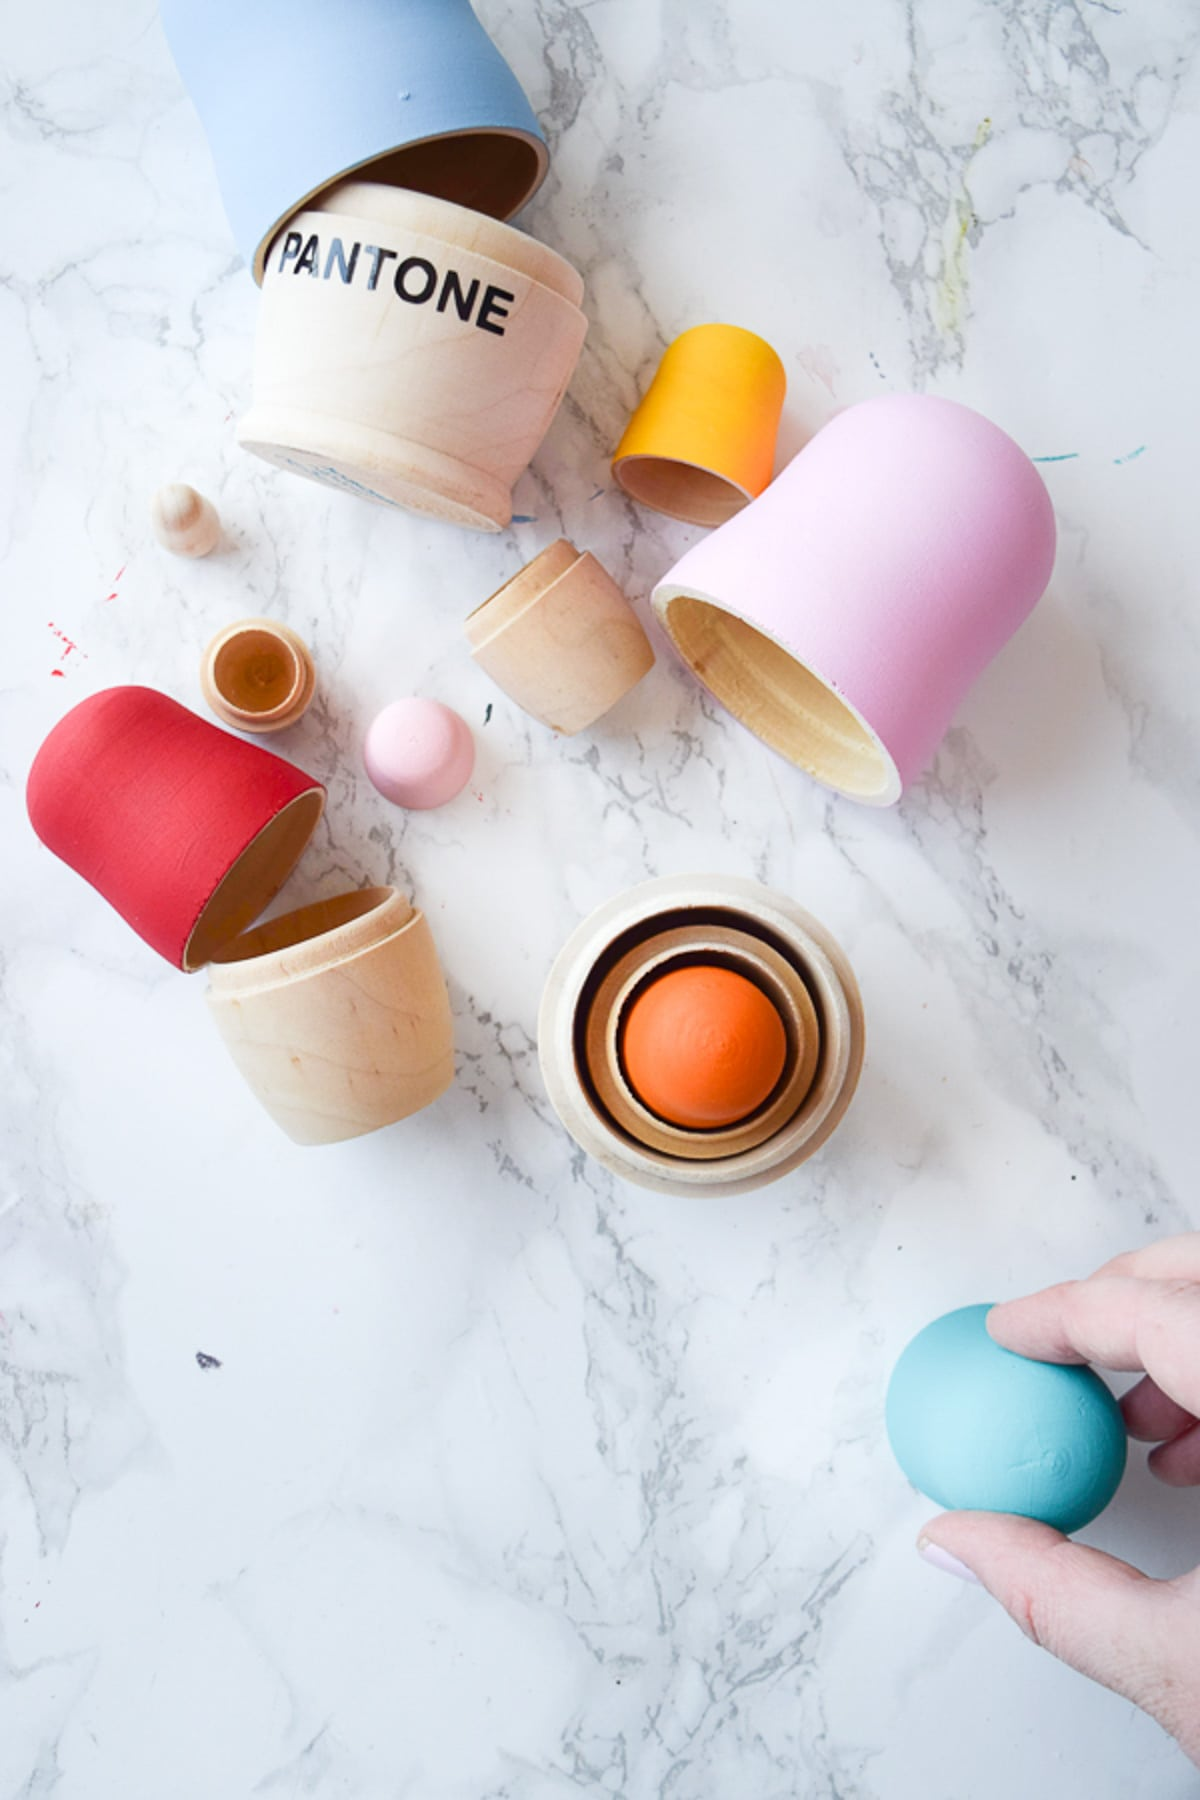 DIY Pantone Nesting Dolls by Sugar & Cloth, an award winning DIY and home decor blog.